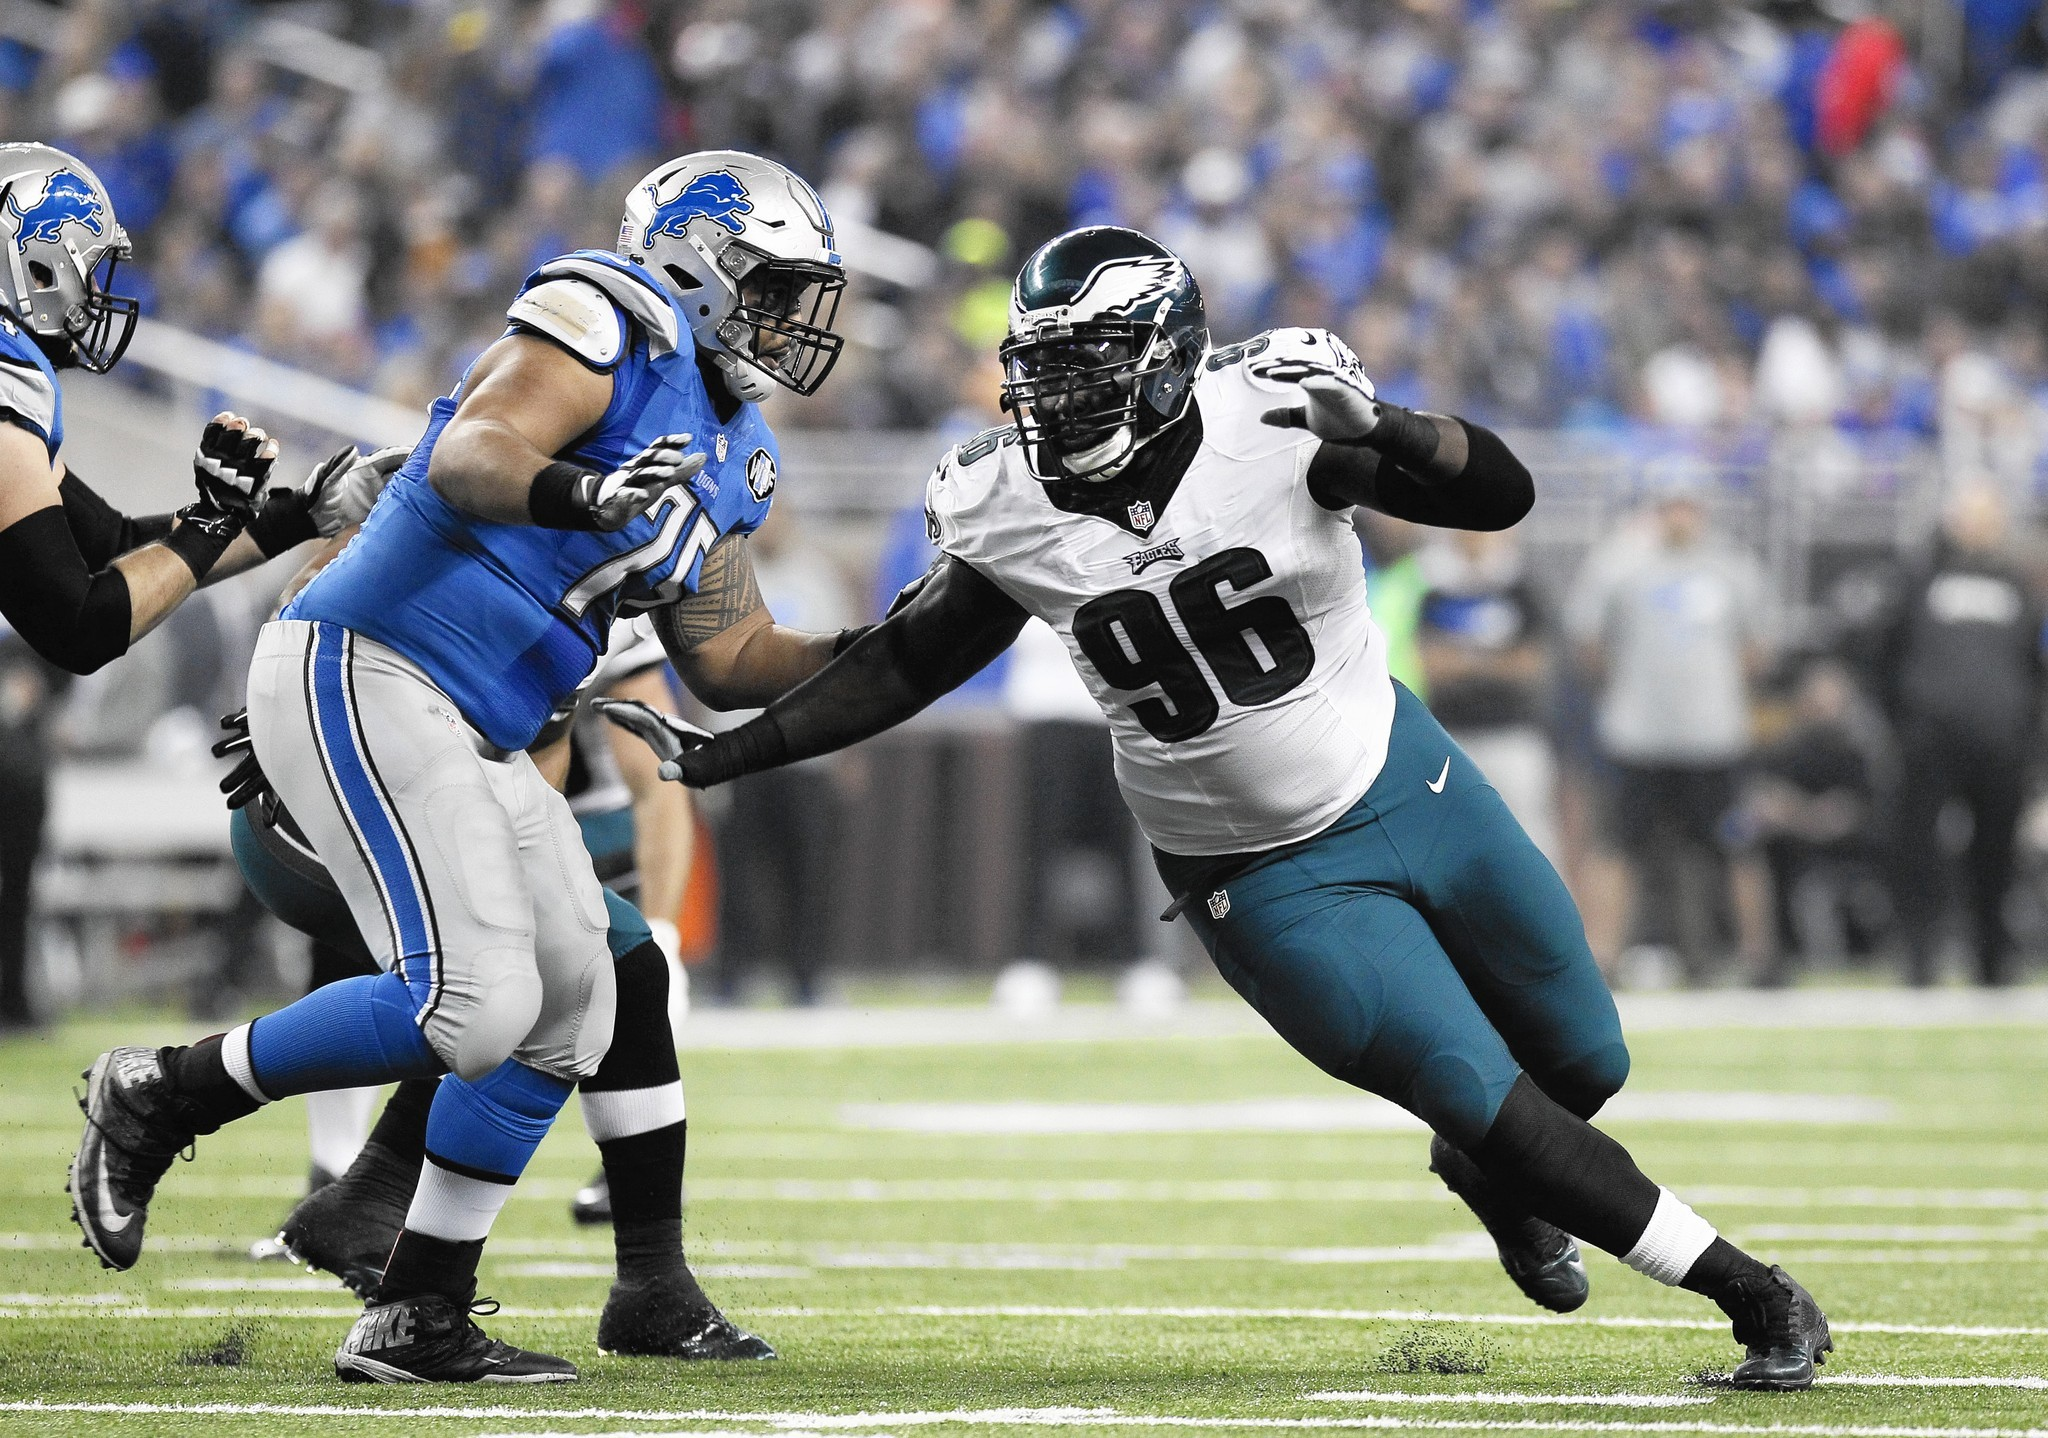 Mc-eagles-pass-rush-0424-20160425